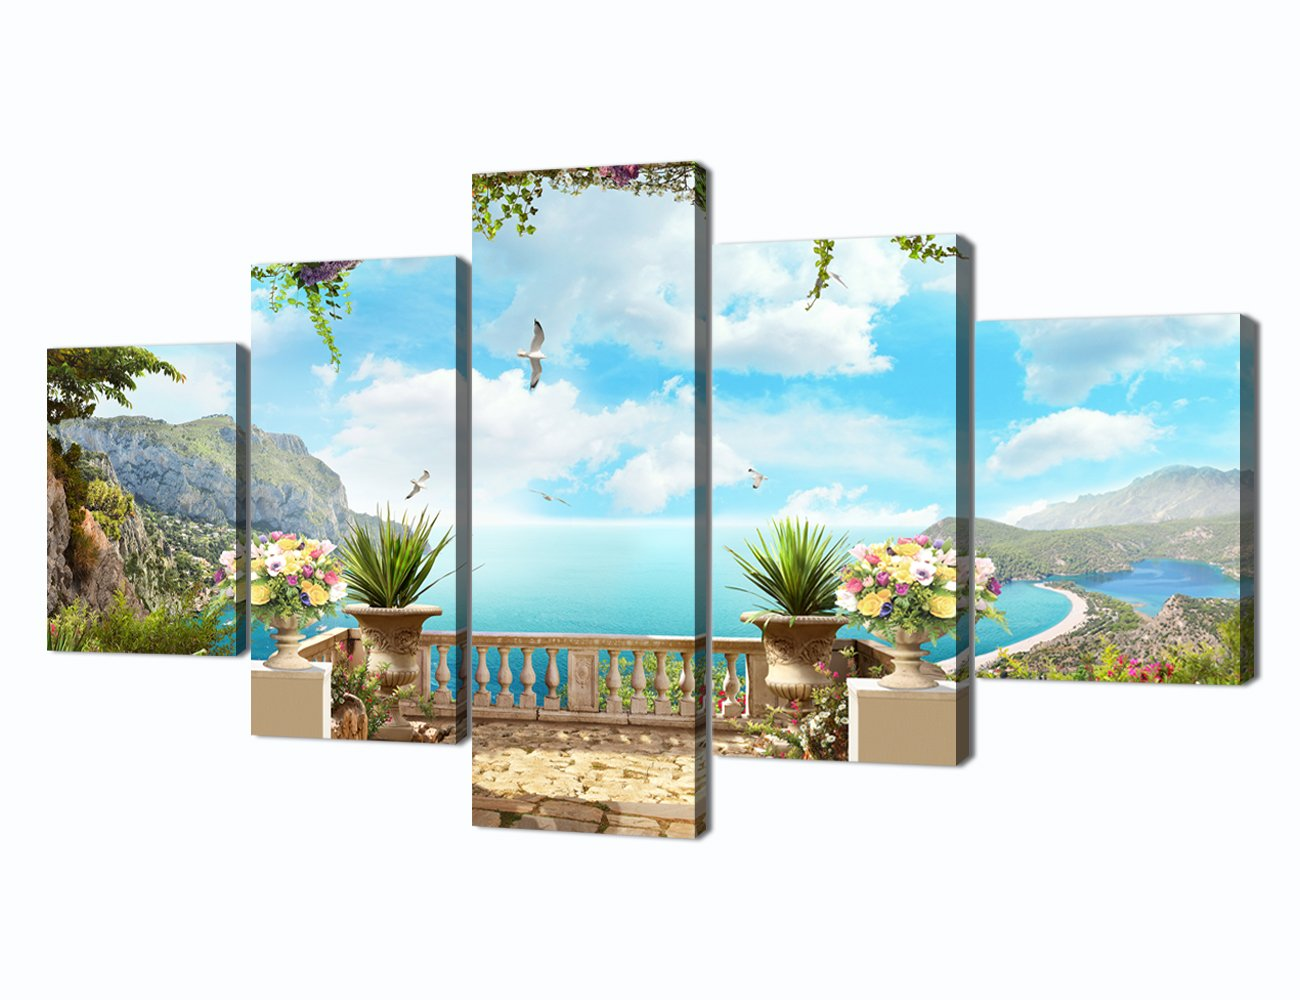 CDM product Garden Pictures for Living Room Ocean Painting 5 Piece Modern Wall Art Canvas Print Home Decoration Bedroom Wall Art for Living Room Decor Posters and Print Framed Ready to Hang(60''W x 32''H) big image